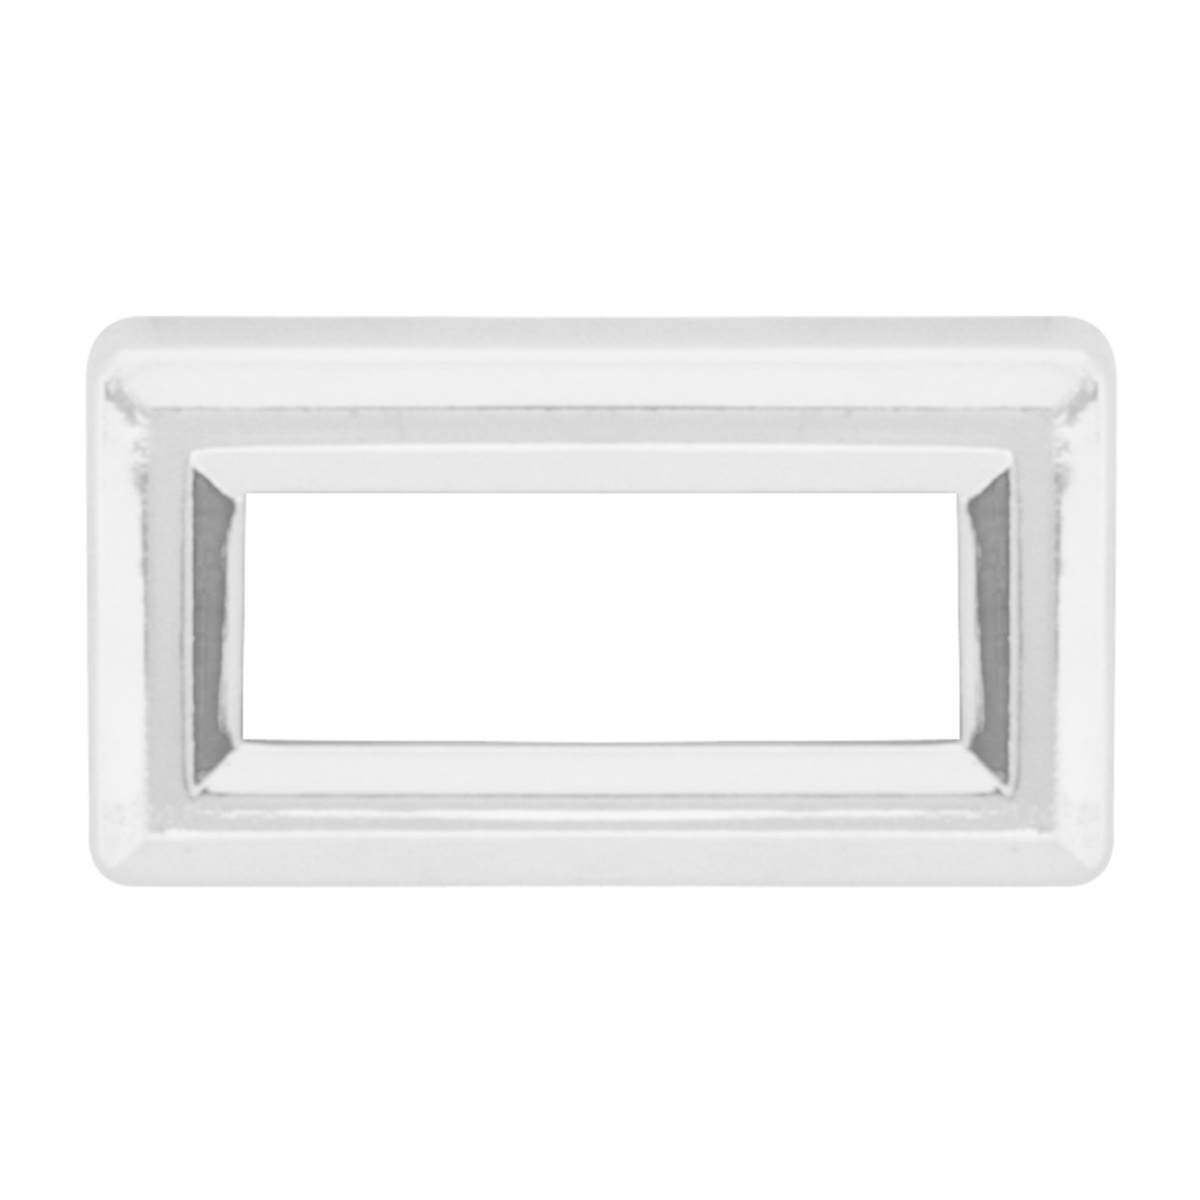 68232 Switch Label Bezel Cover for Kenworth W